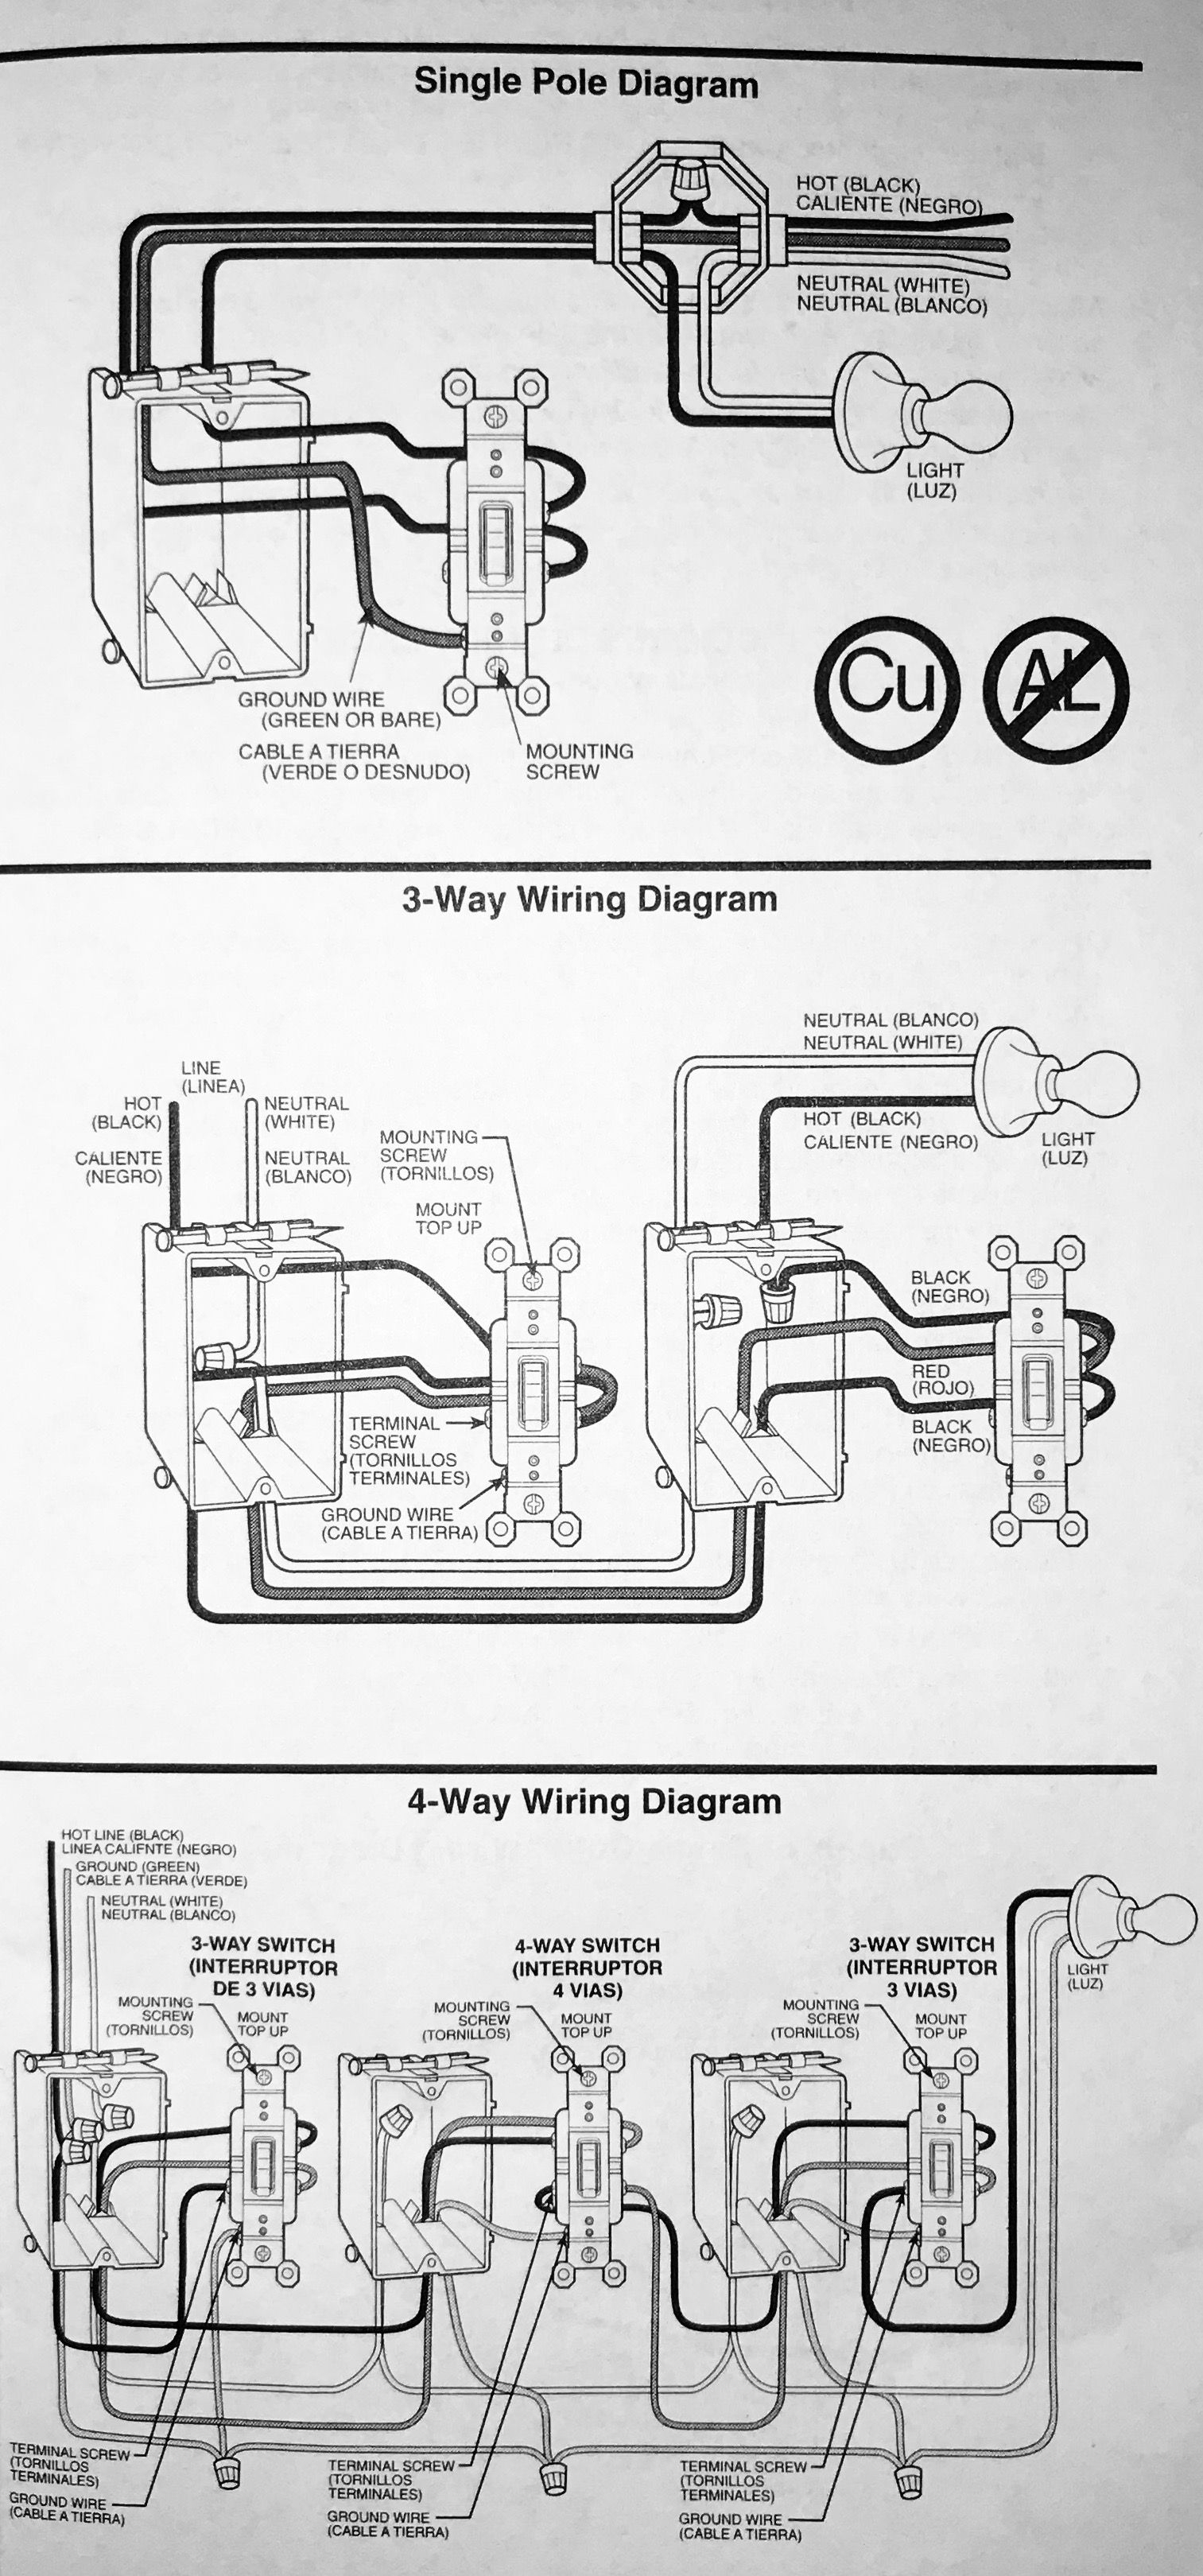 Installation Of Single Pole, 3-Way, & 4-Way Switches - Wiring - 3 Way Switch Single Pole Wiring Diagram